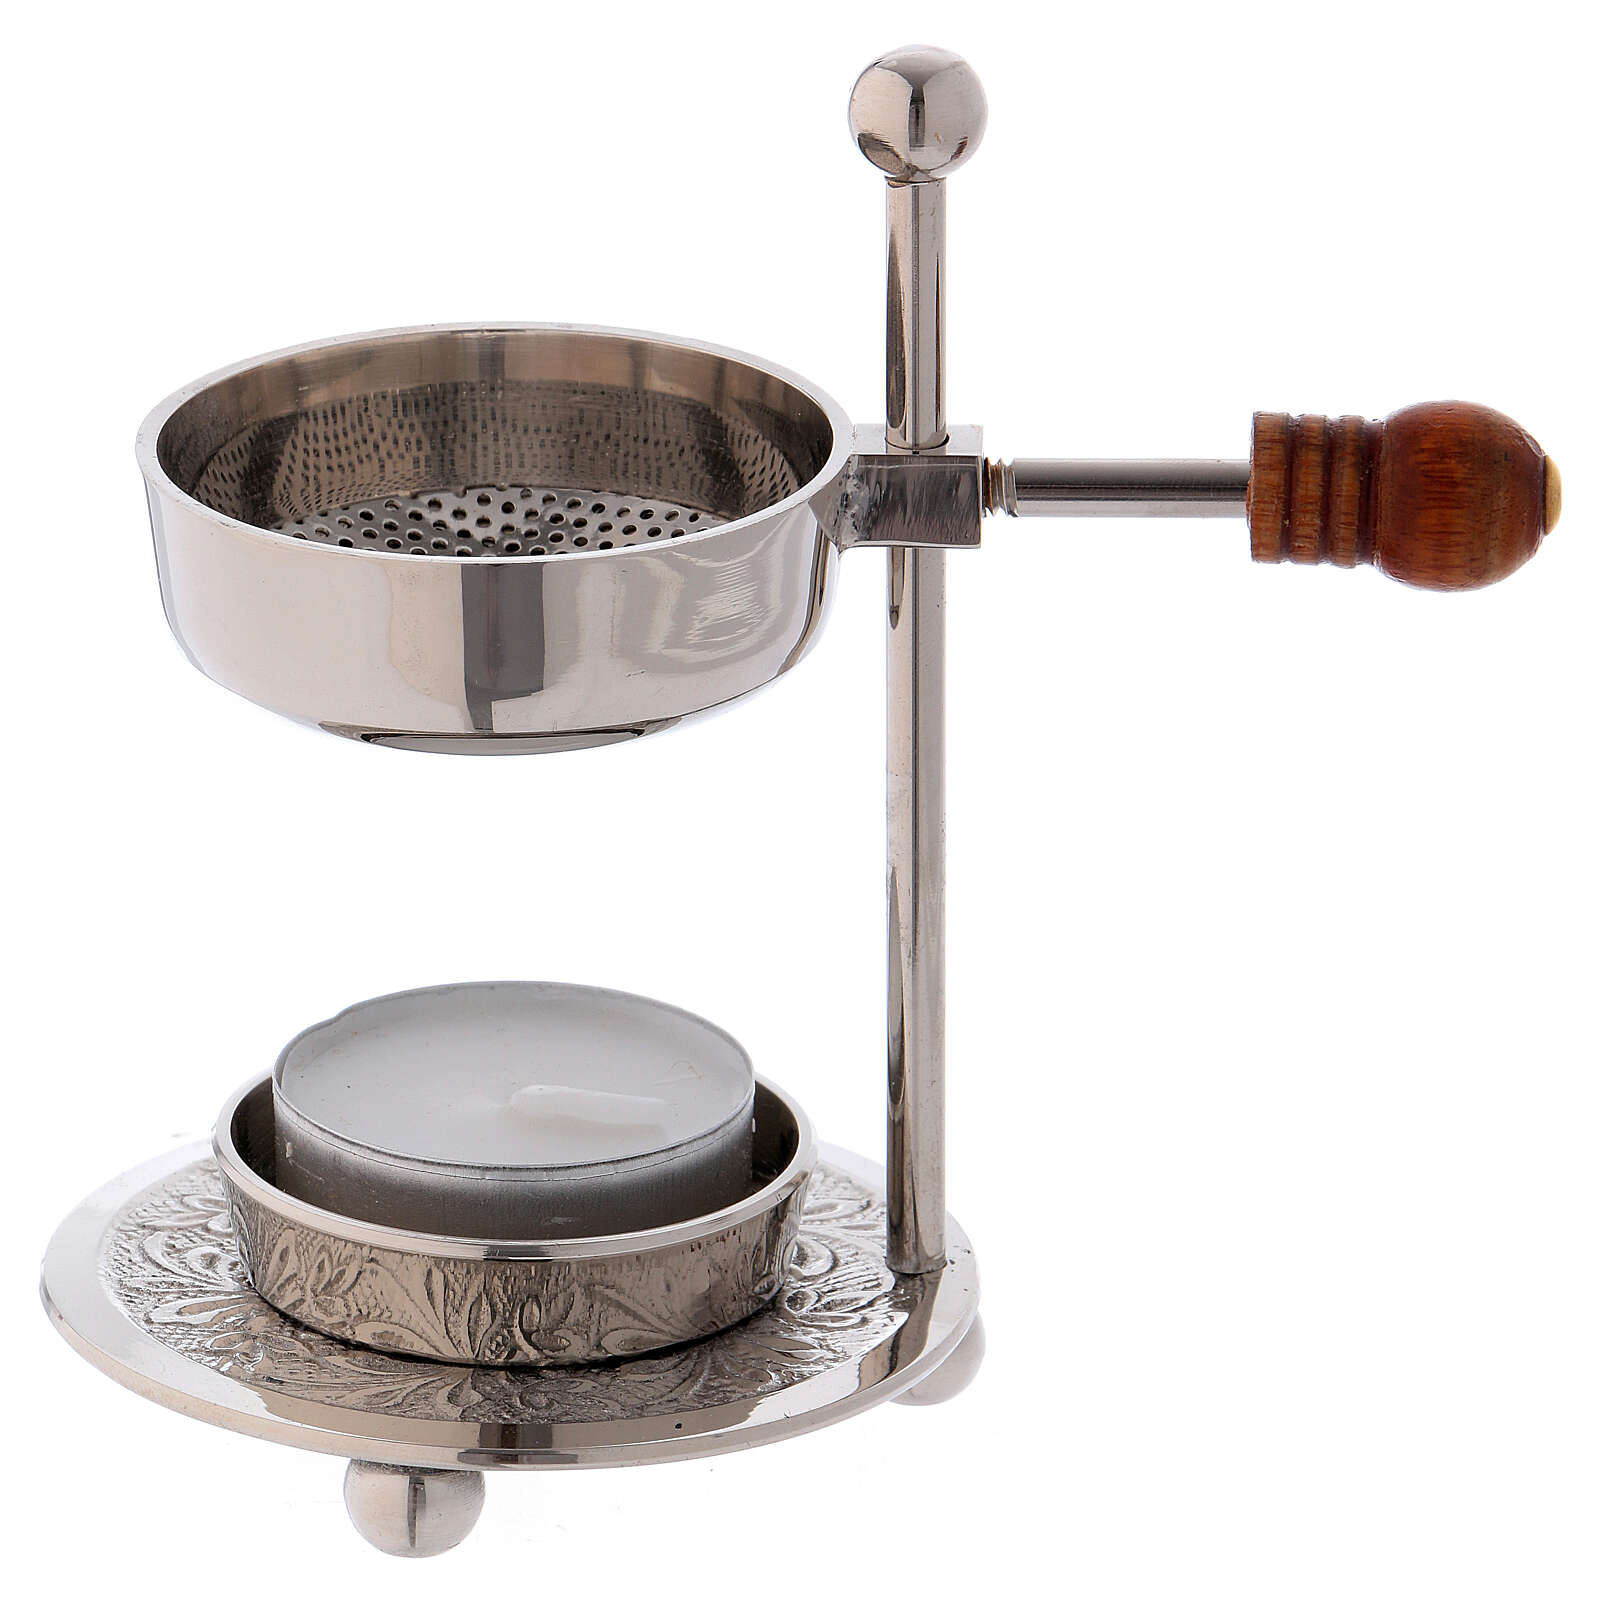 Silver-plated brass incense burner with wood handle 4 1/4 in 3